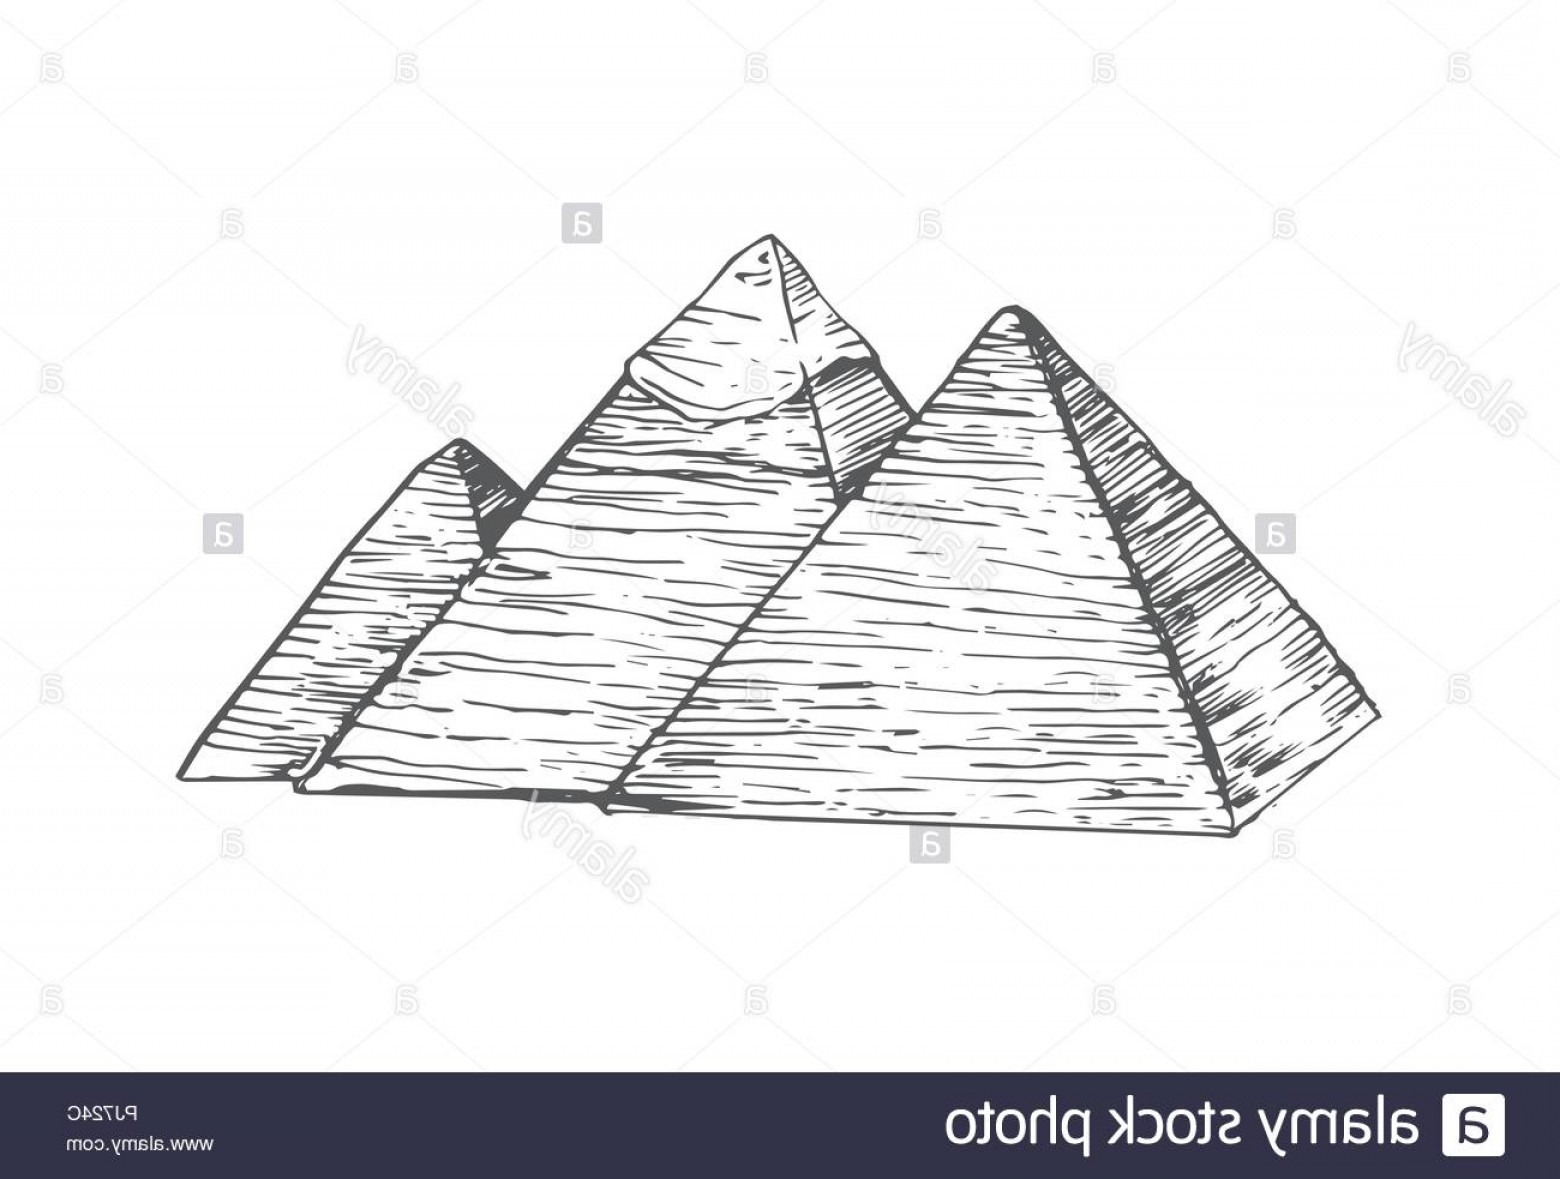 Piramids Vector Art: Egypt Pyramids In Flat Style Isolated On White Background Image